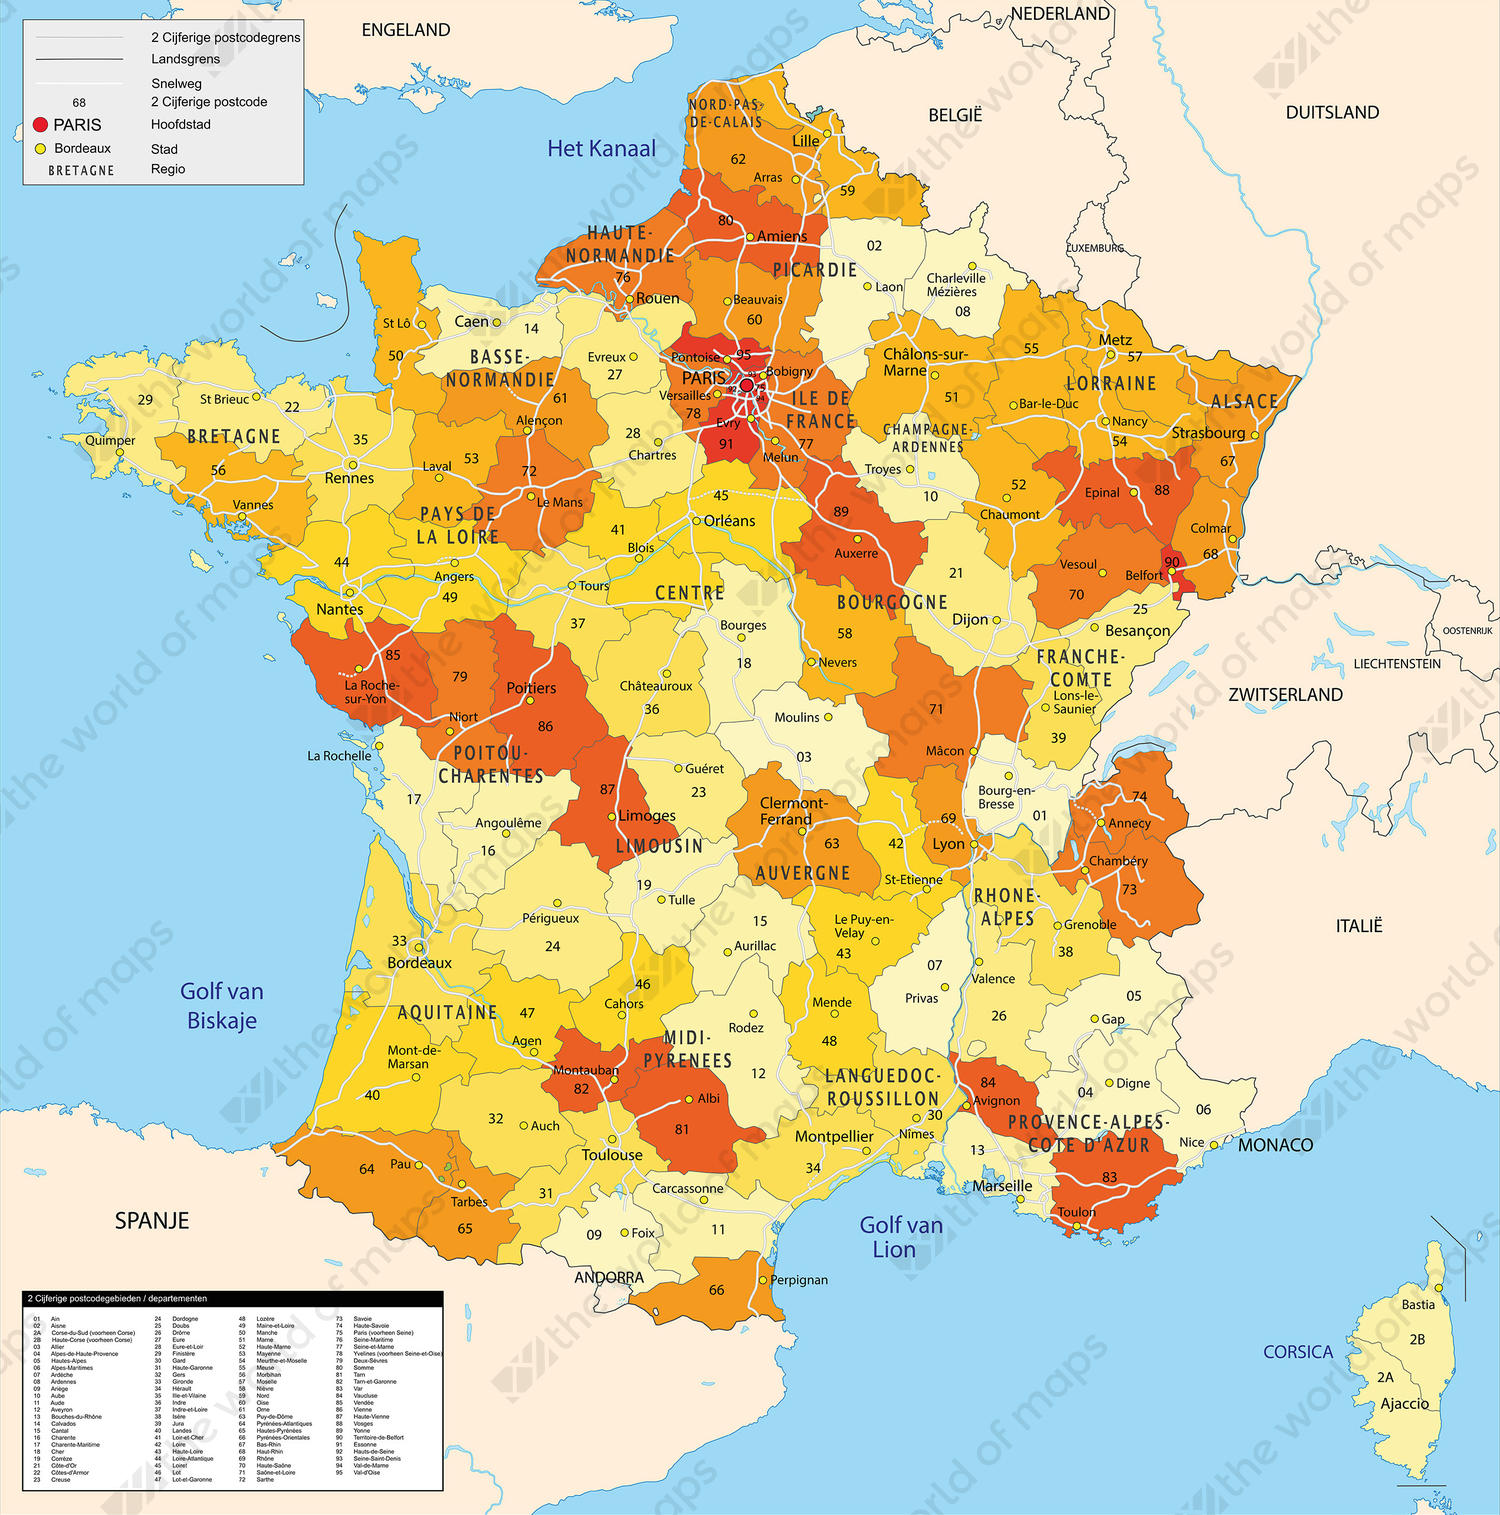 France Map Of The World.Digital 2 Digit Postcode Map France 813 The World Of Maps Com